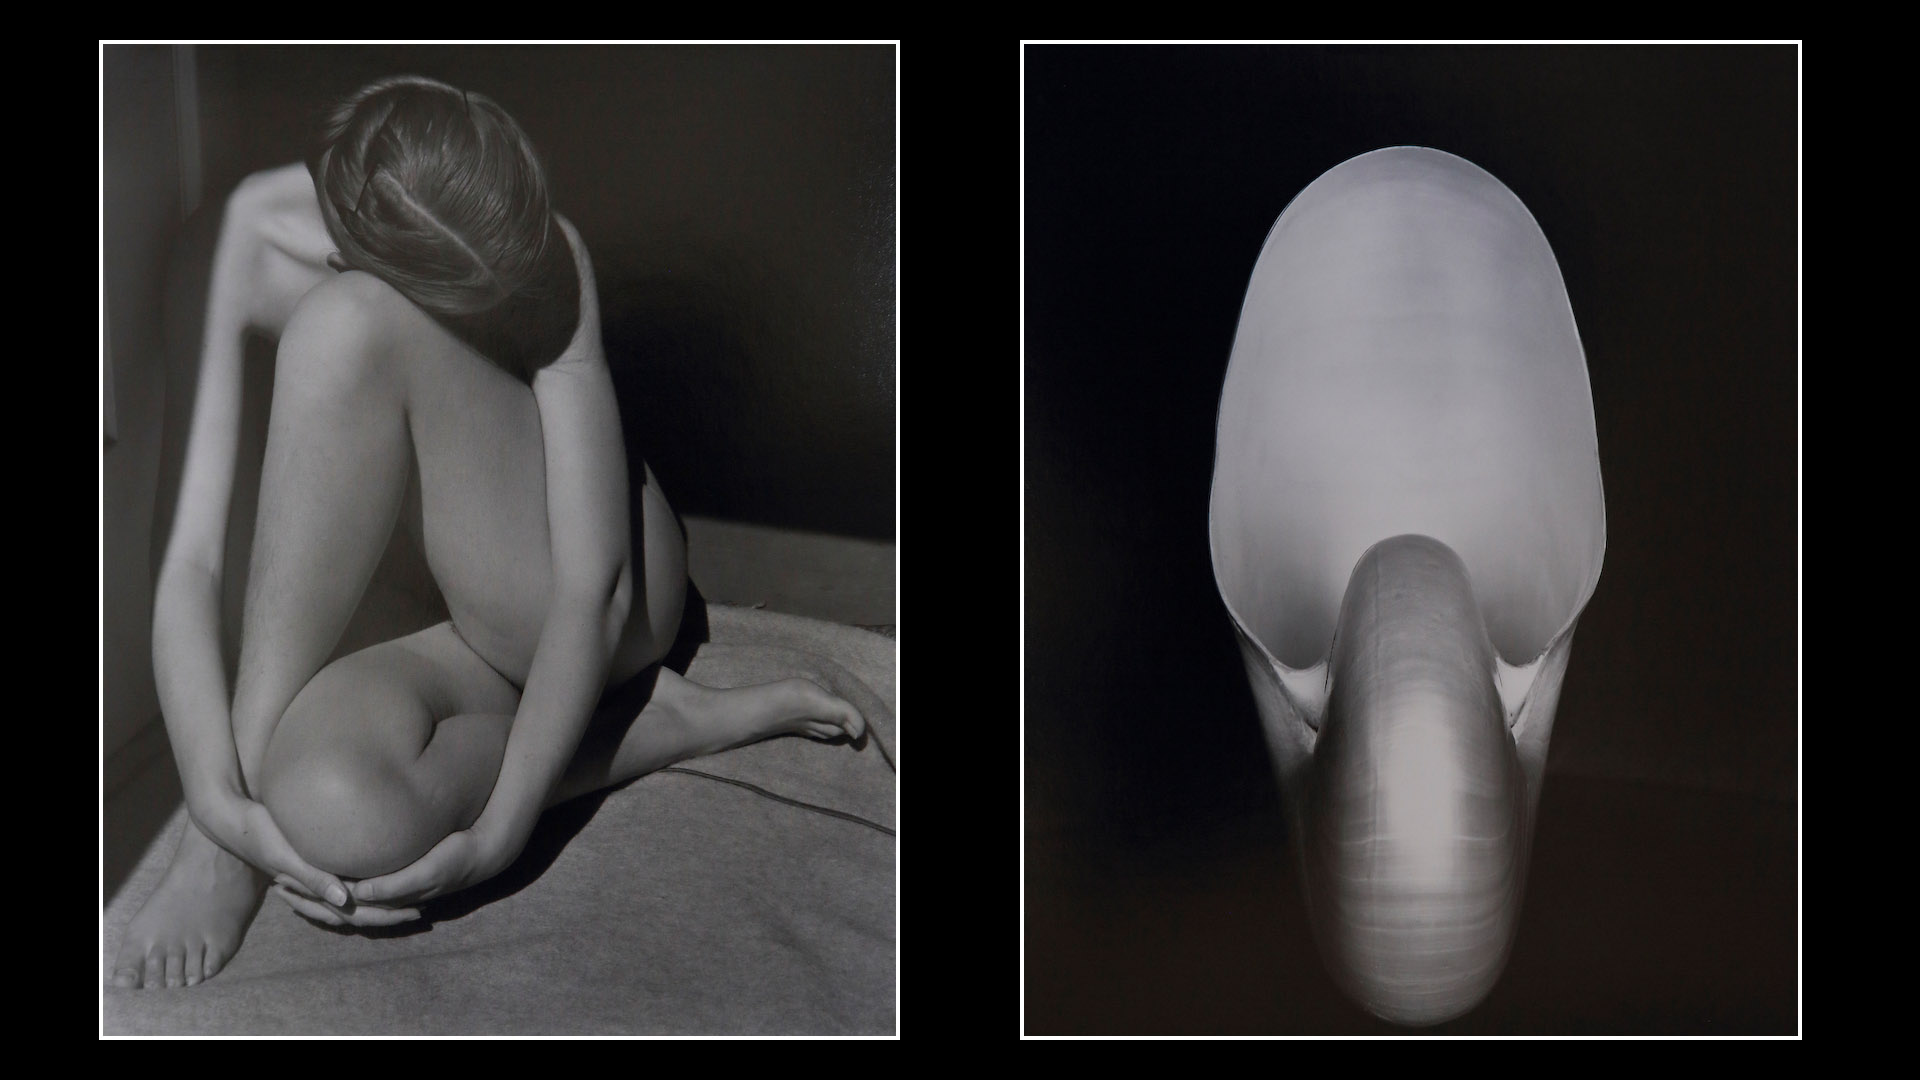 Edward Weston: Nude 1935 and Shell 1927